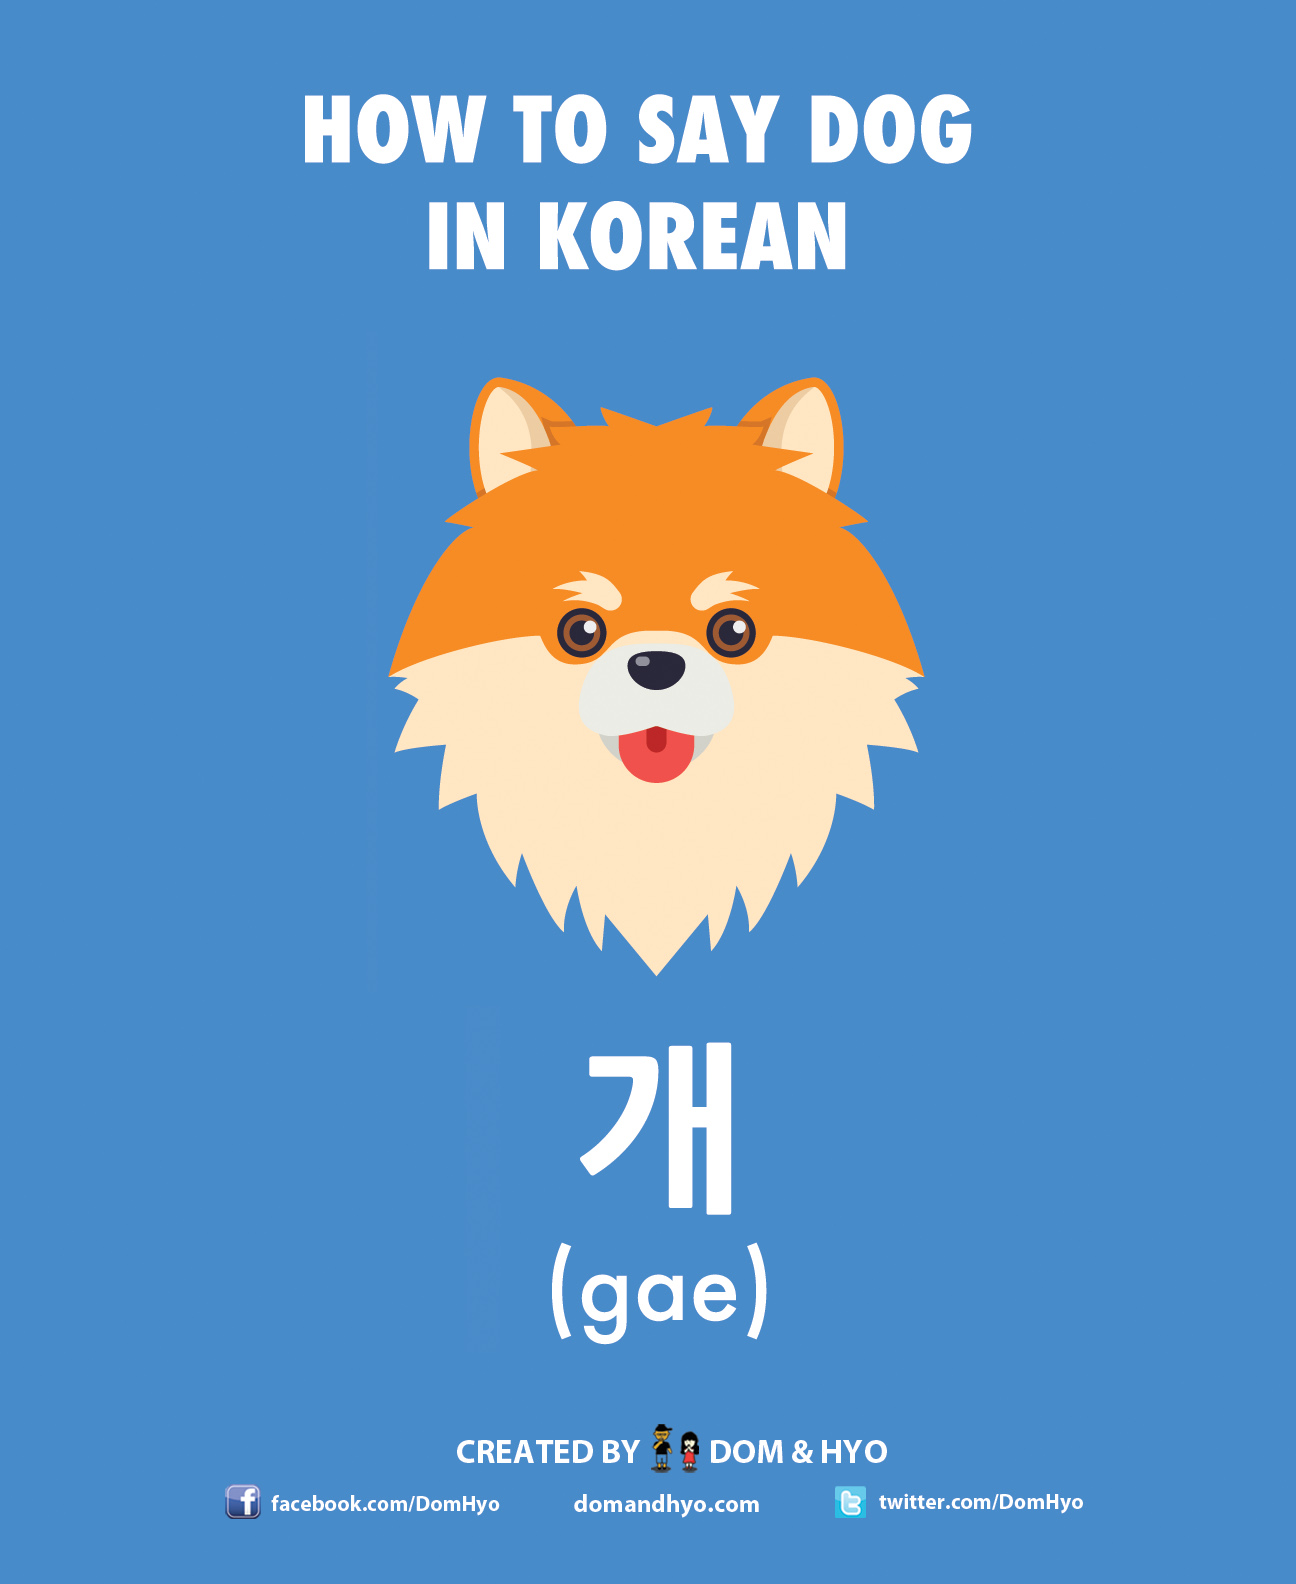 Dog in Korean